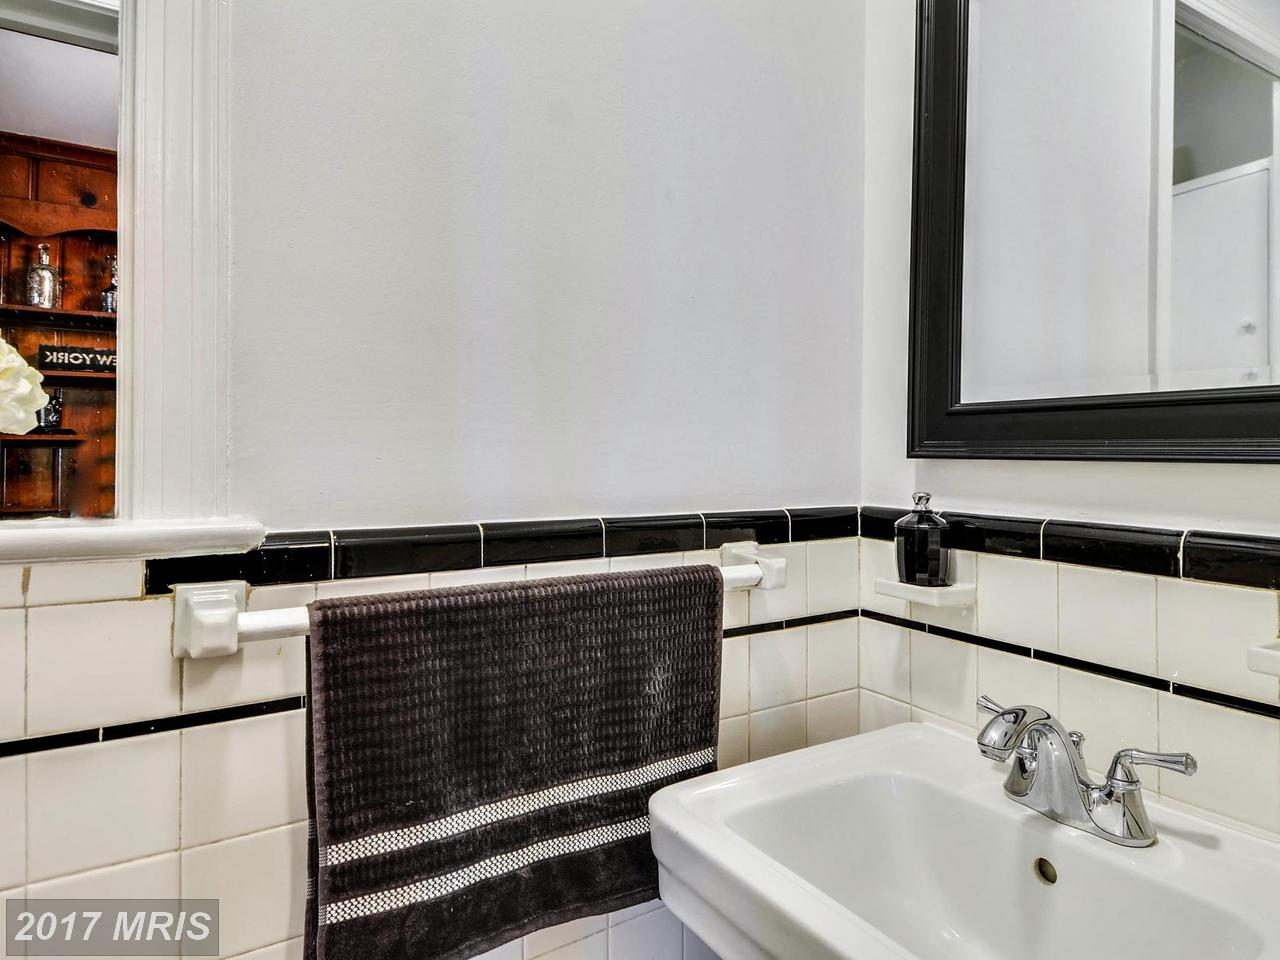 Additional photo for property listing at Detached, Other - WASHINGTON, DC 3720 ALTON PL NW 华盛顿市, 哥伦比亚特区,20016 美国